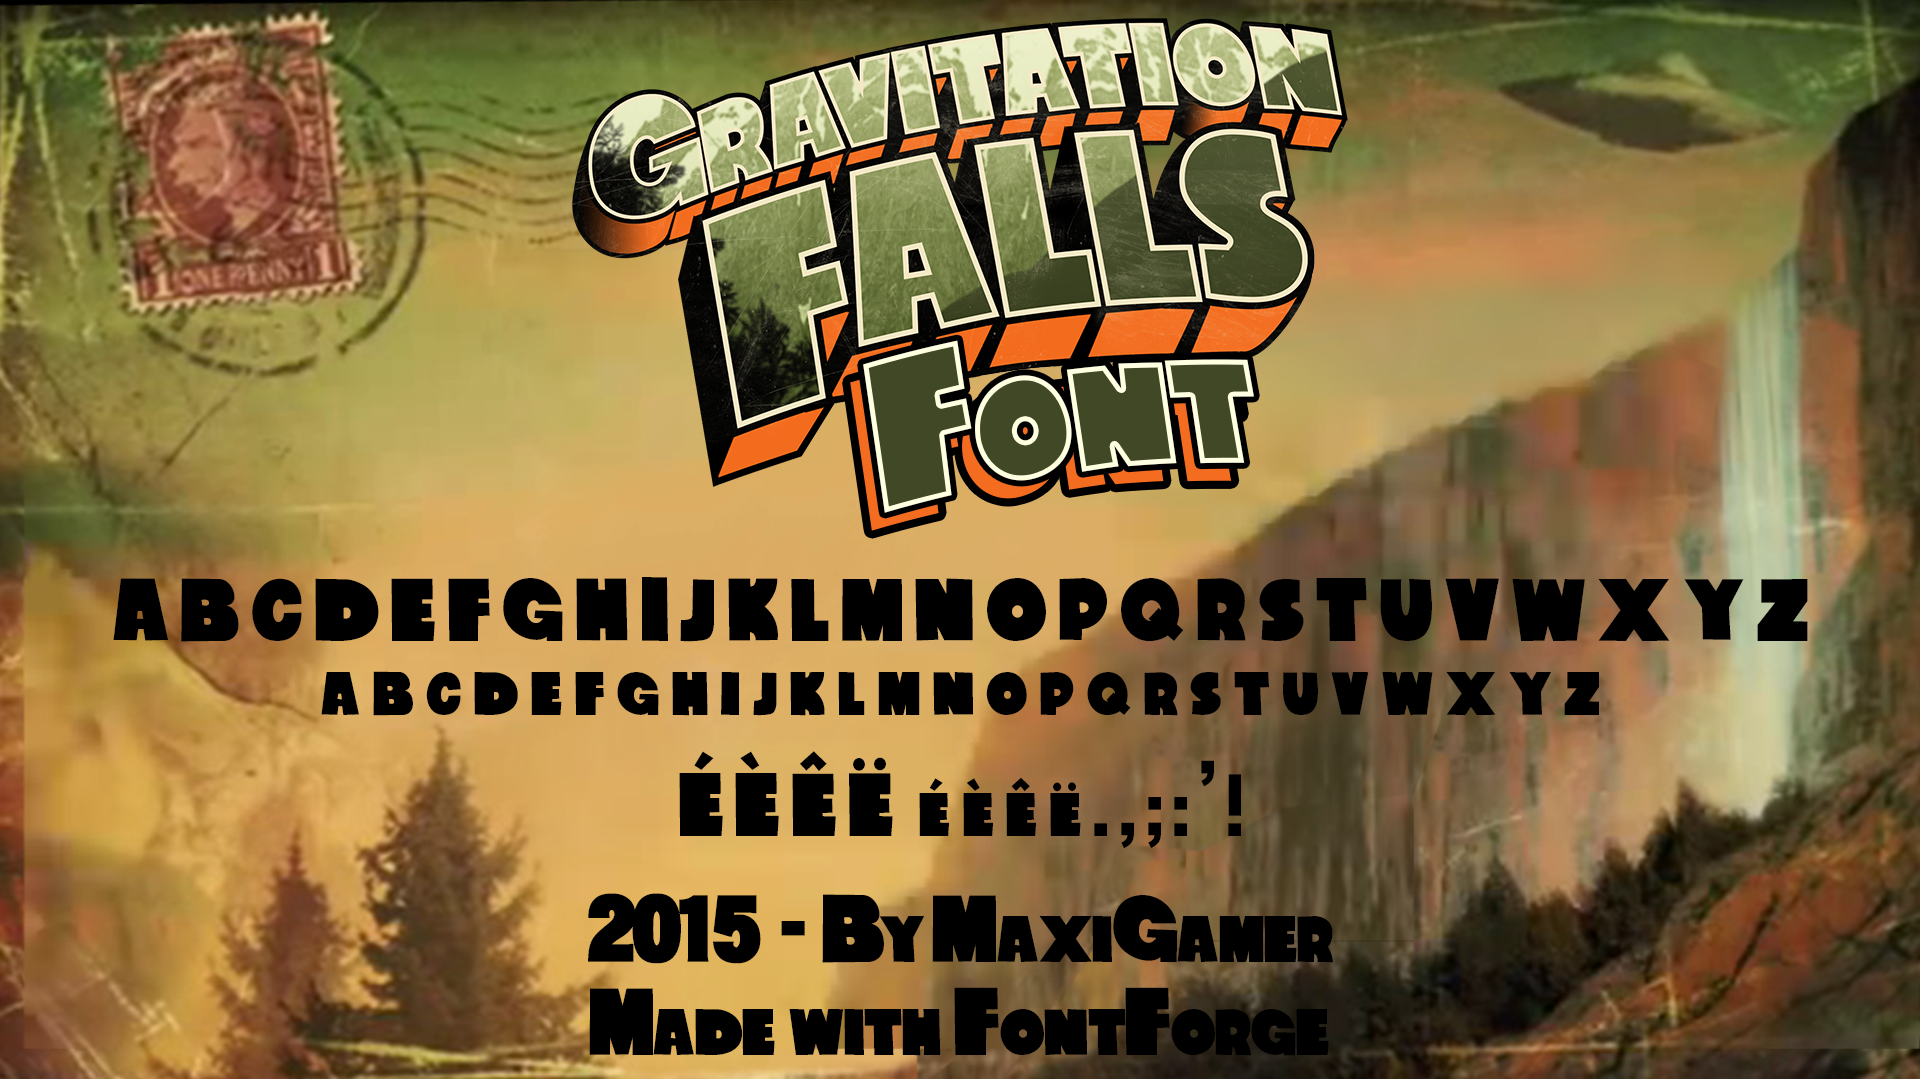 Gravitation Falls FONT (Download Now!) by MaxiGamer